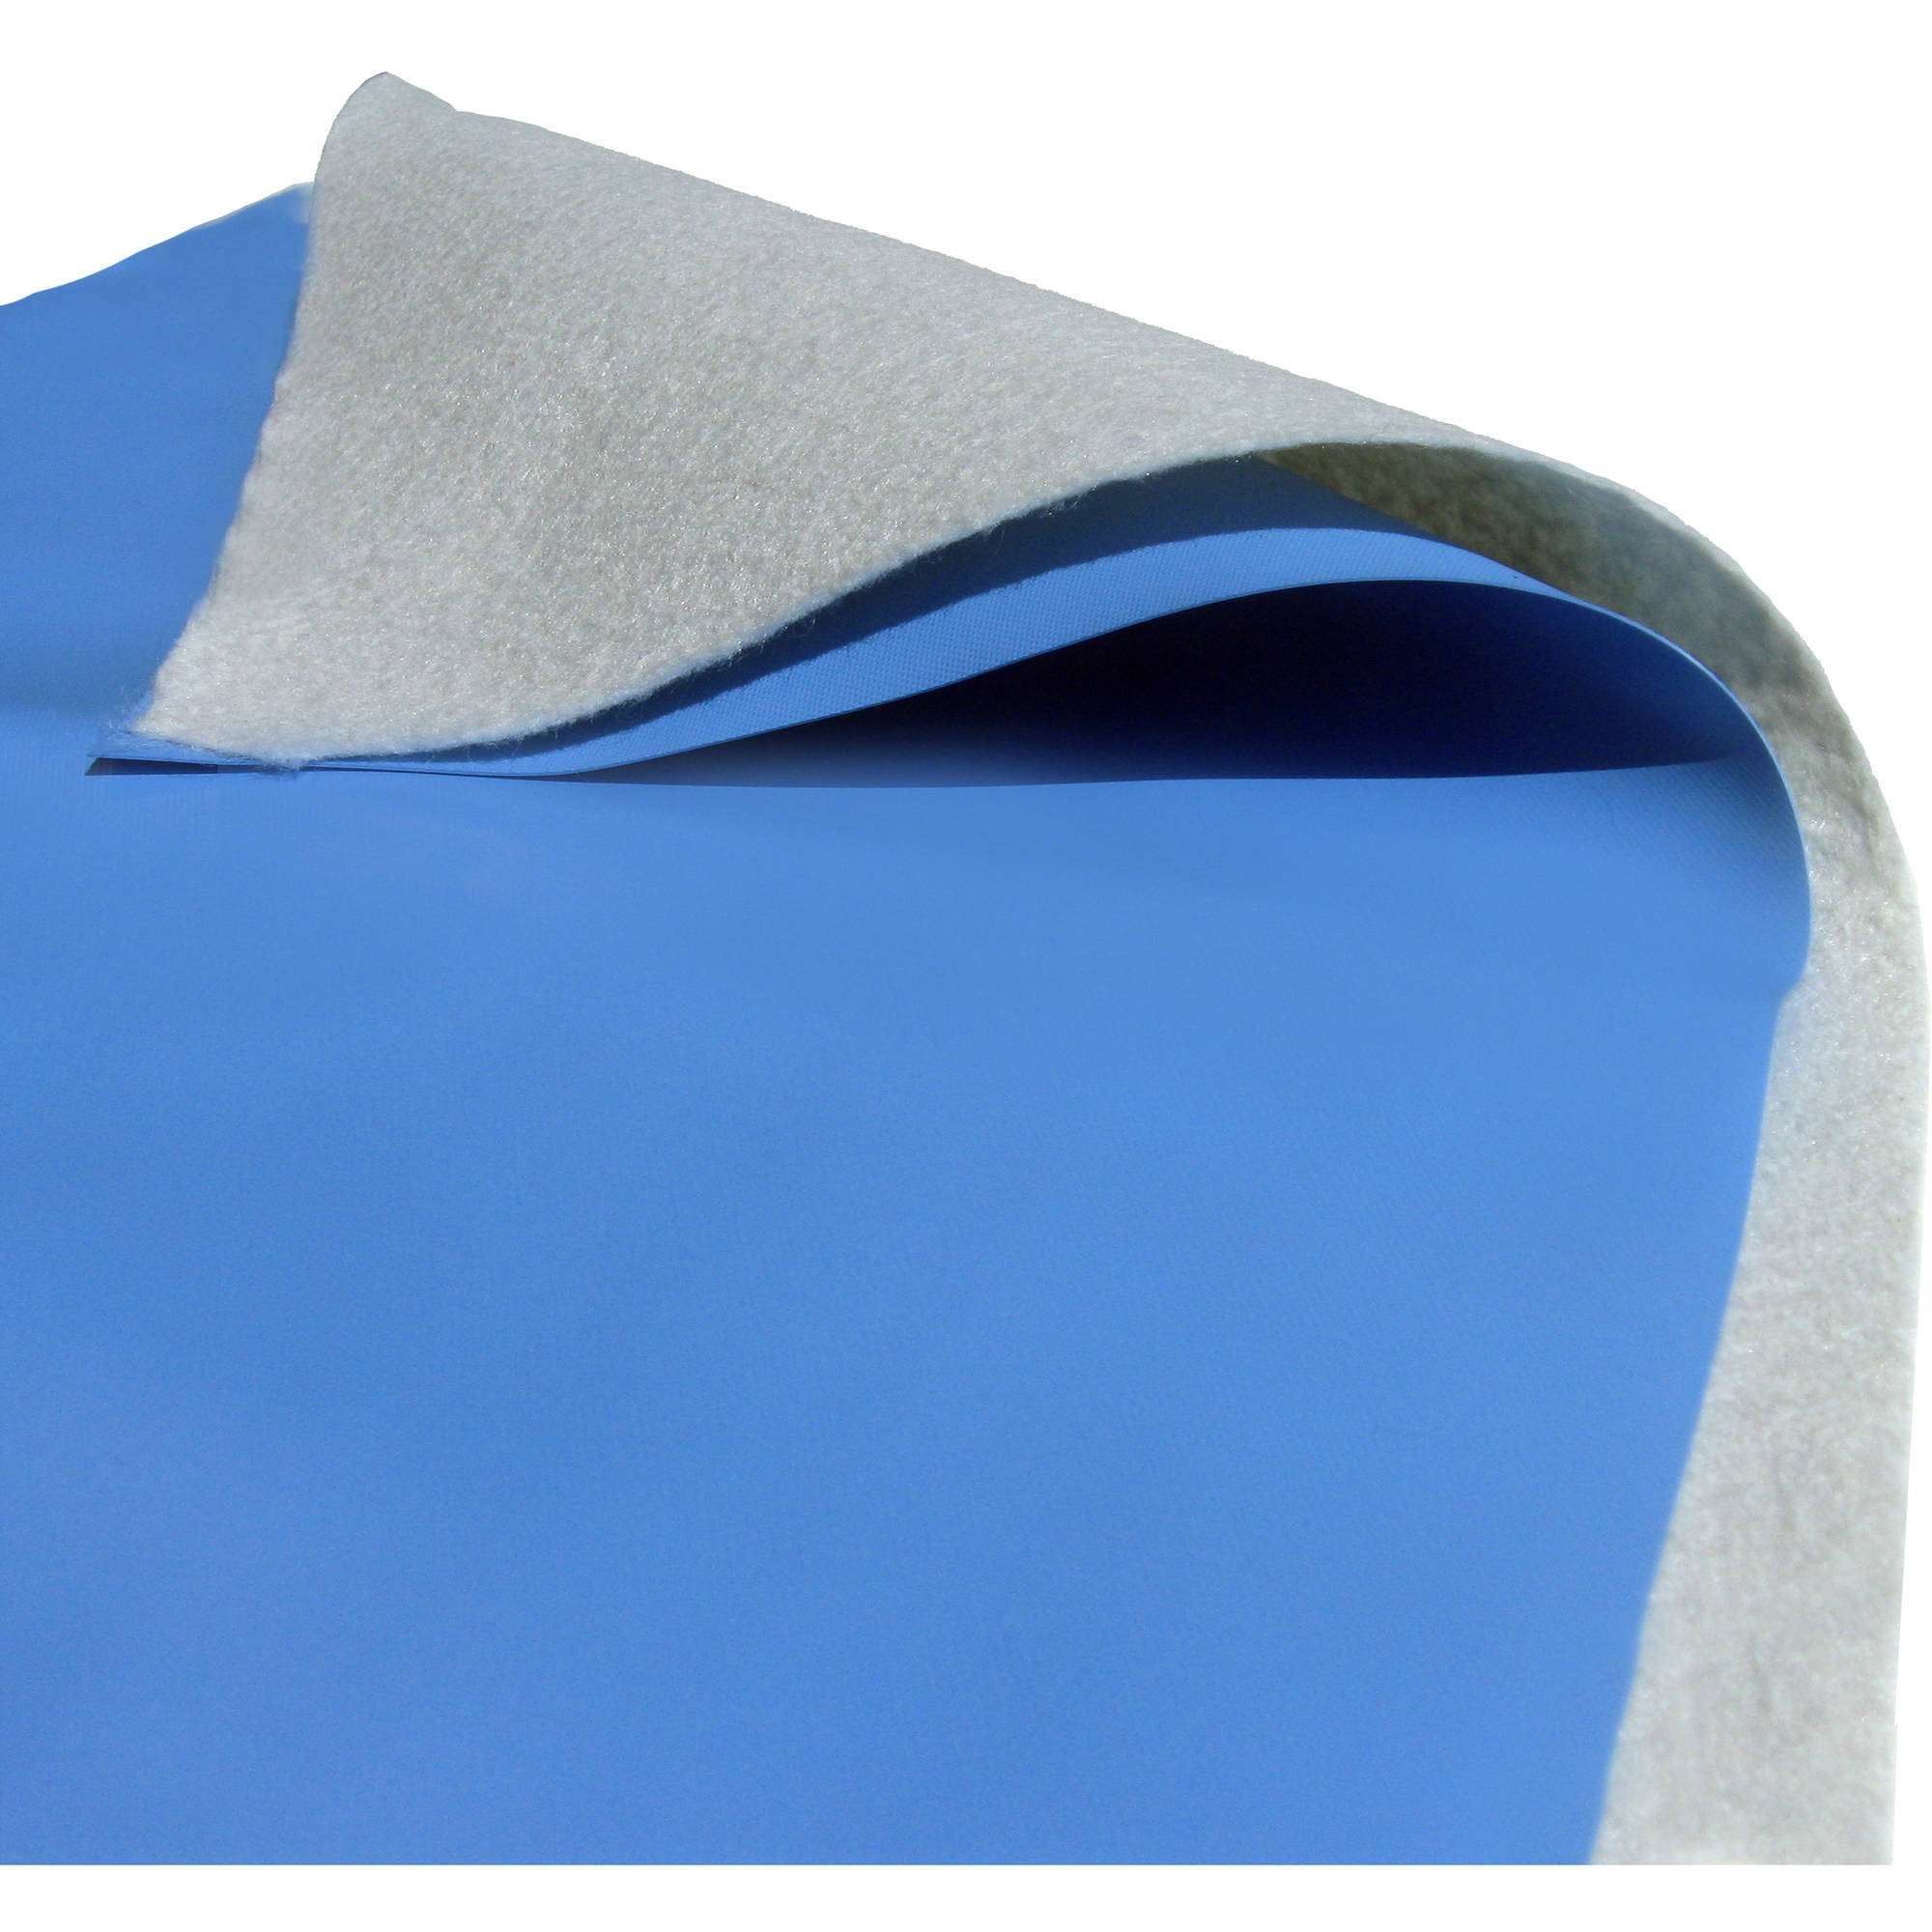 Blue Wave Oval Liner Pad for Above-Ground Pools, 12' x 24'